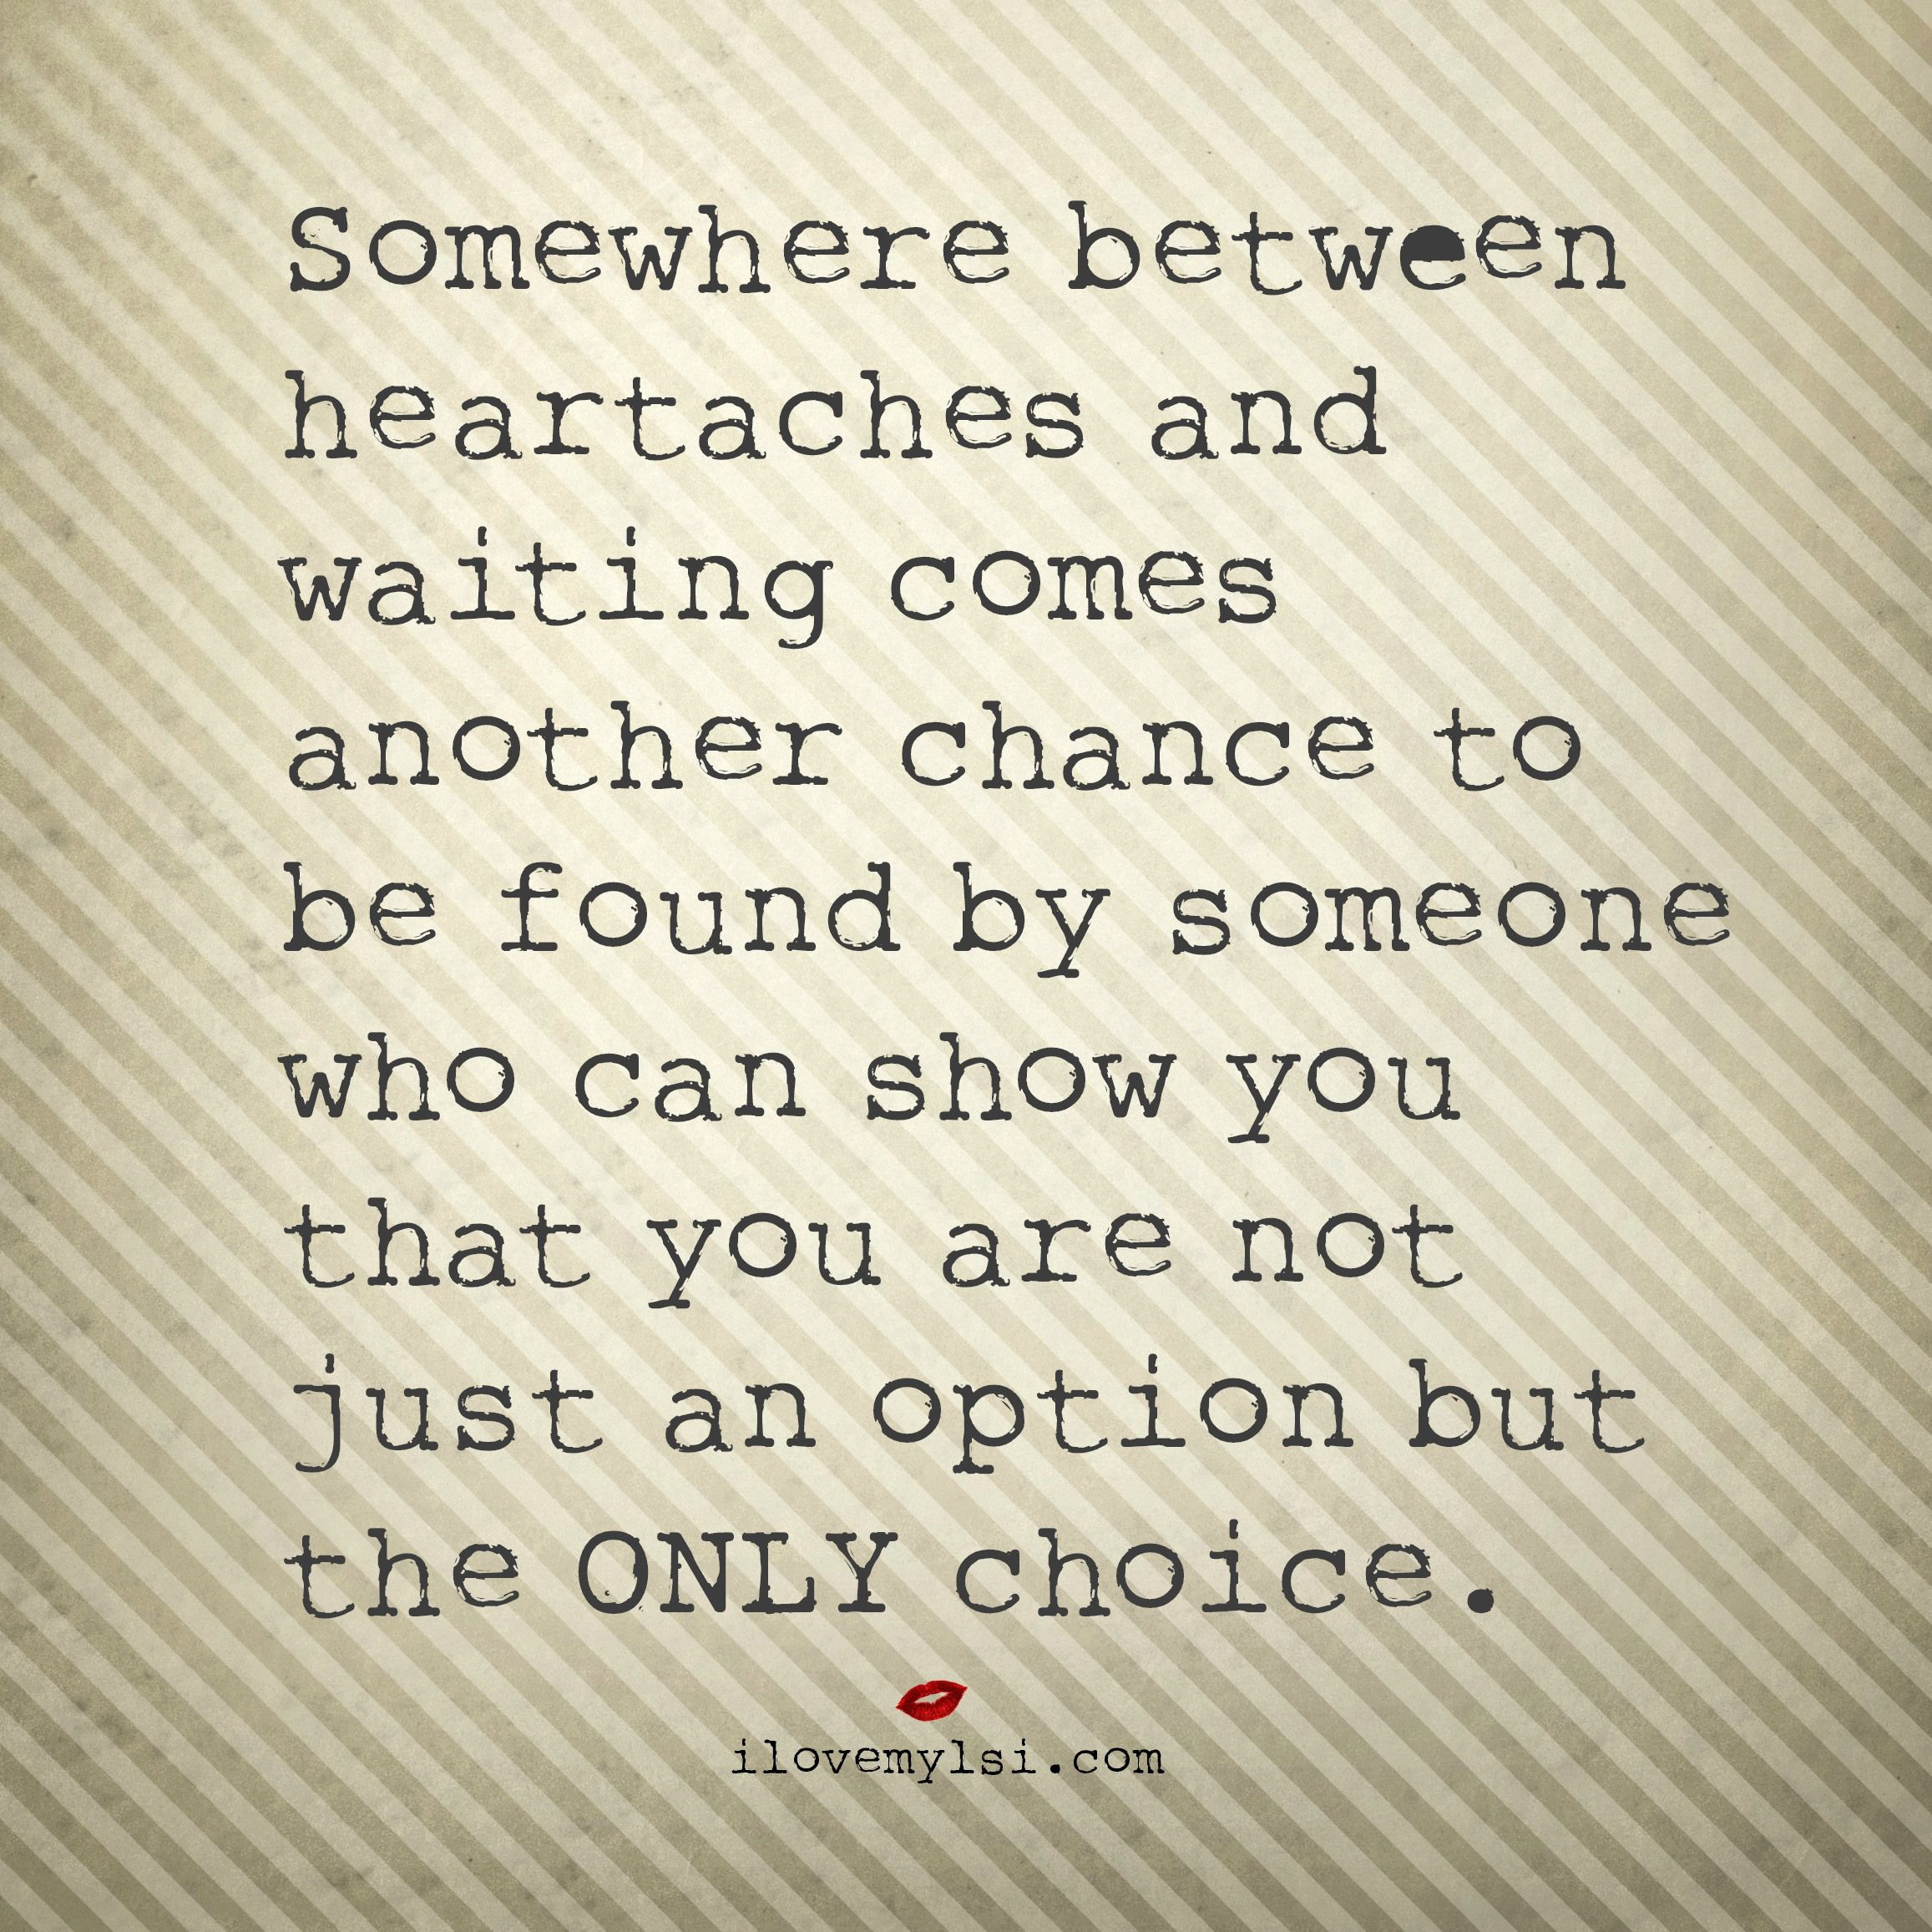 Somewhere between heartaches and waiting comes another chance to be found by someone who can show you that you are not just an option but the only choice